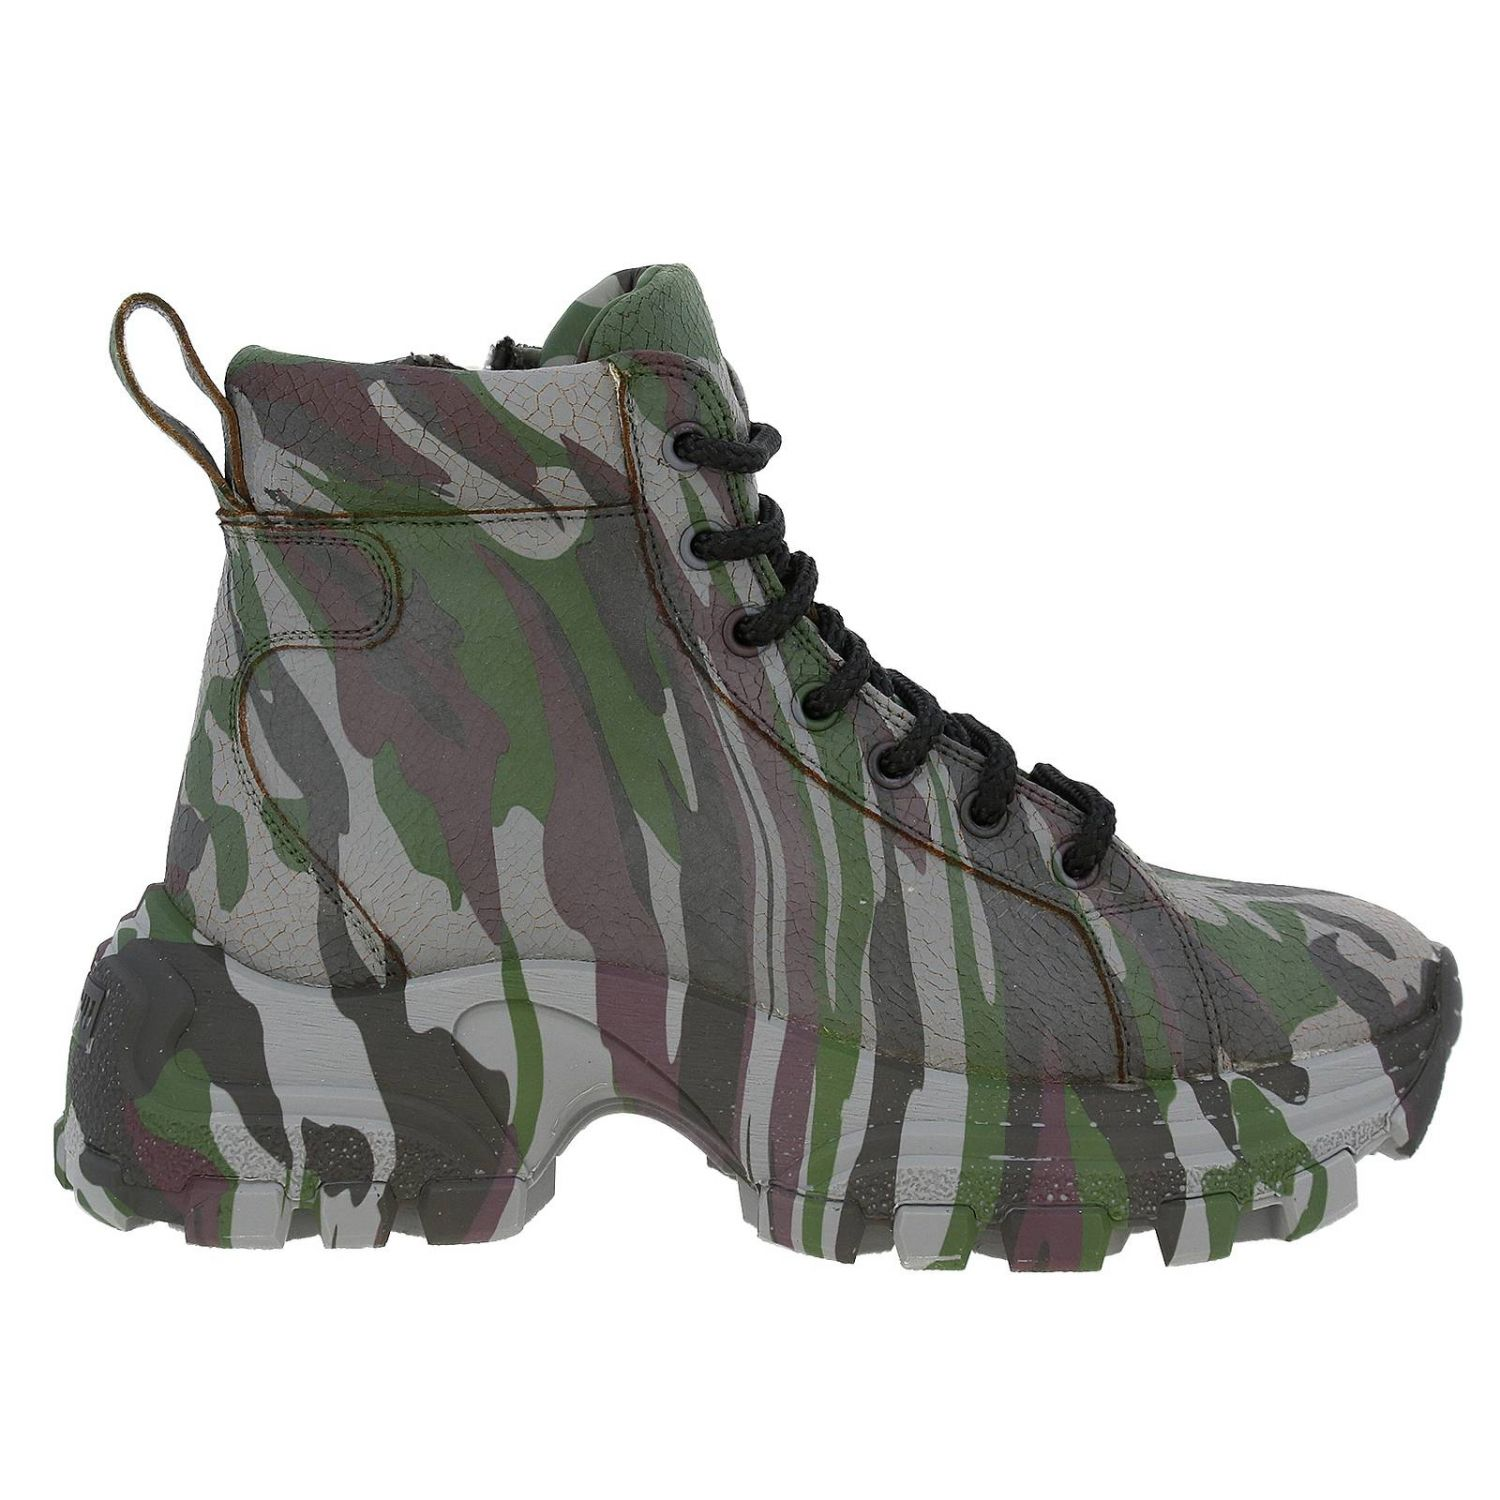 Miu Miu sneakers in camouflage printed leather with combat sole military 1